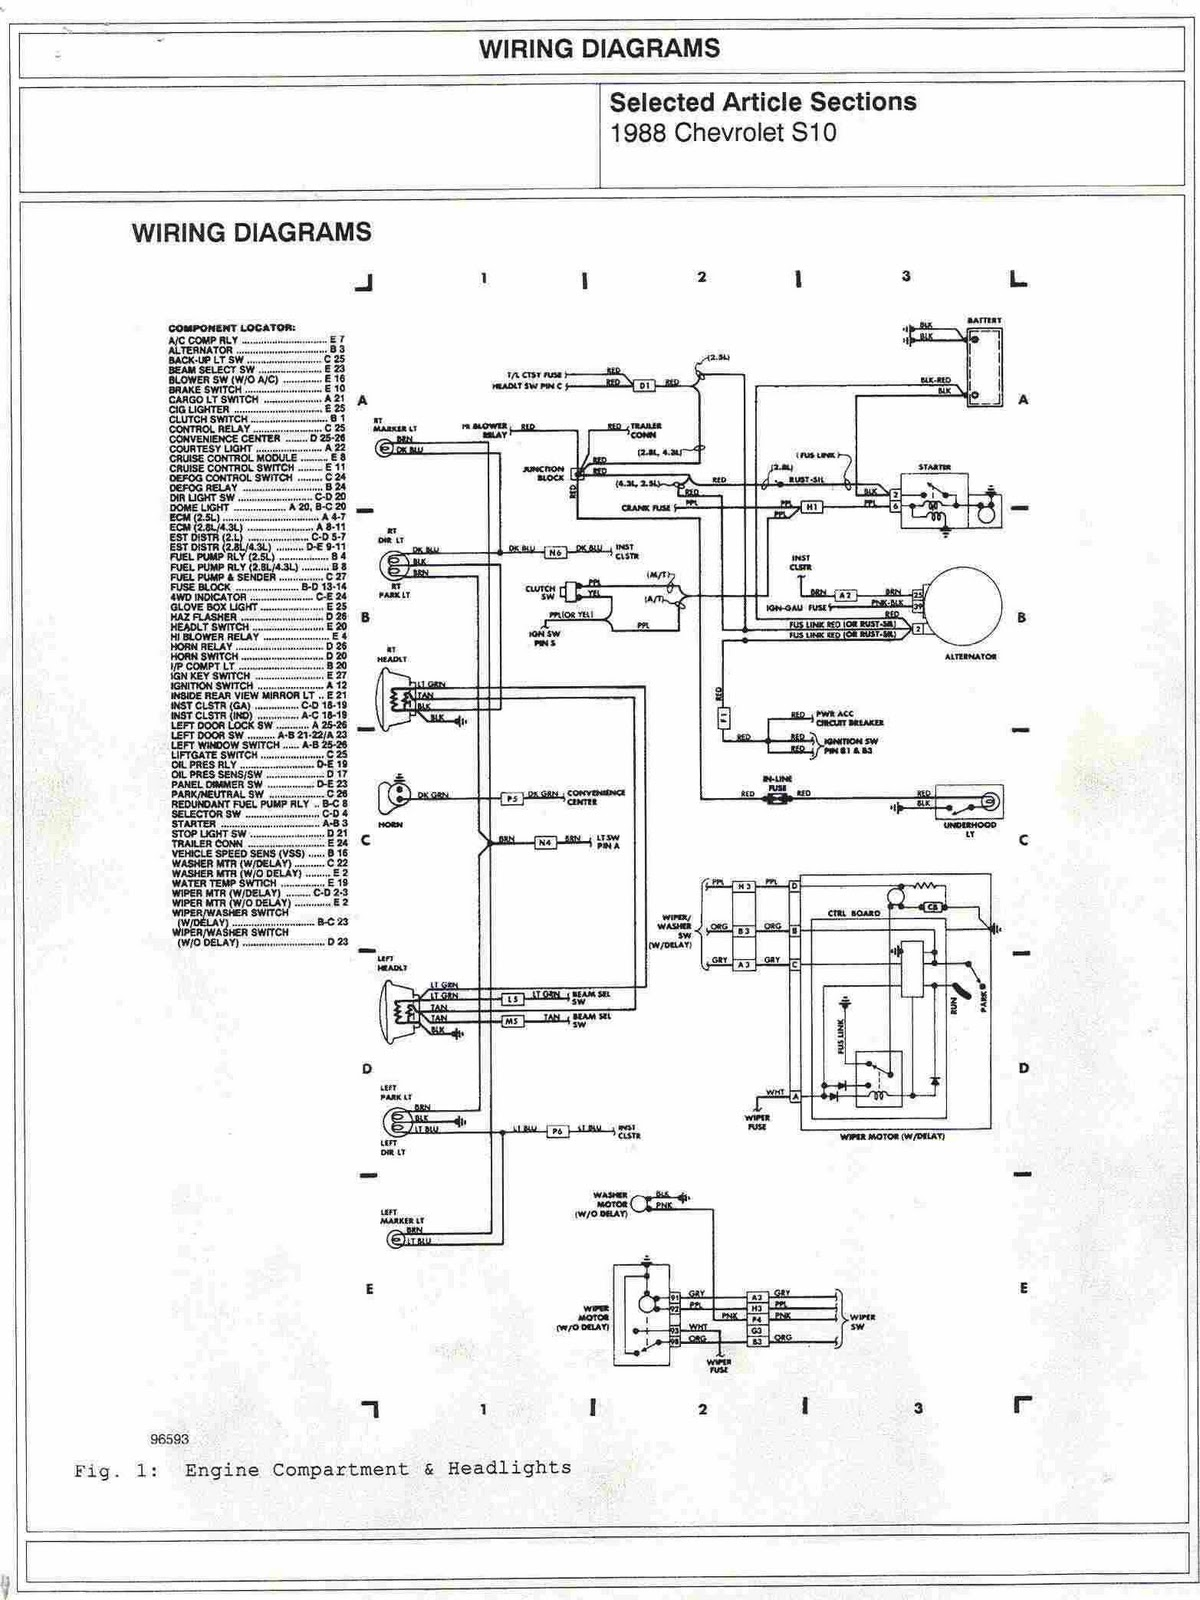 1988+Chevrolet+S10+Engine+Compartment+and+Headlights+Wiring+Diagrams 95 s10 wiring diagram 95 tahoe wiring diagram \u2022 wiring diagrams 78 Chevy Silverado at fashall.co